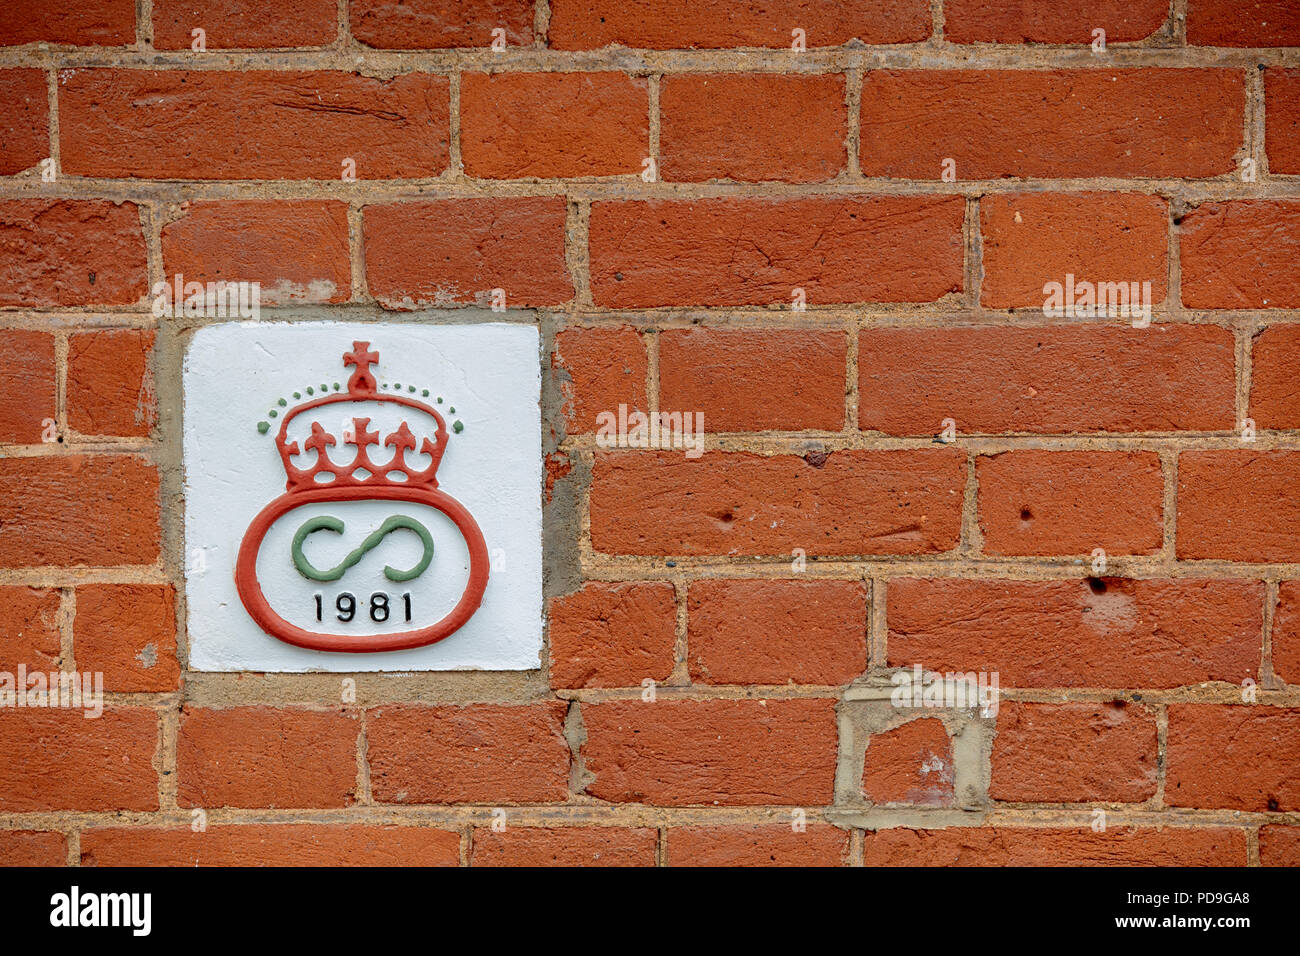 Wall of house with red brick wall and year of building sign, Hampstead, London. - Stock Image